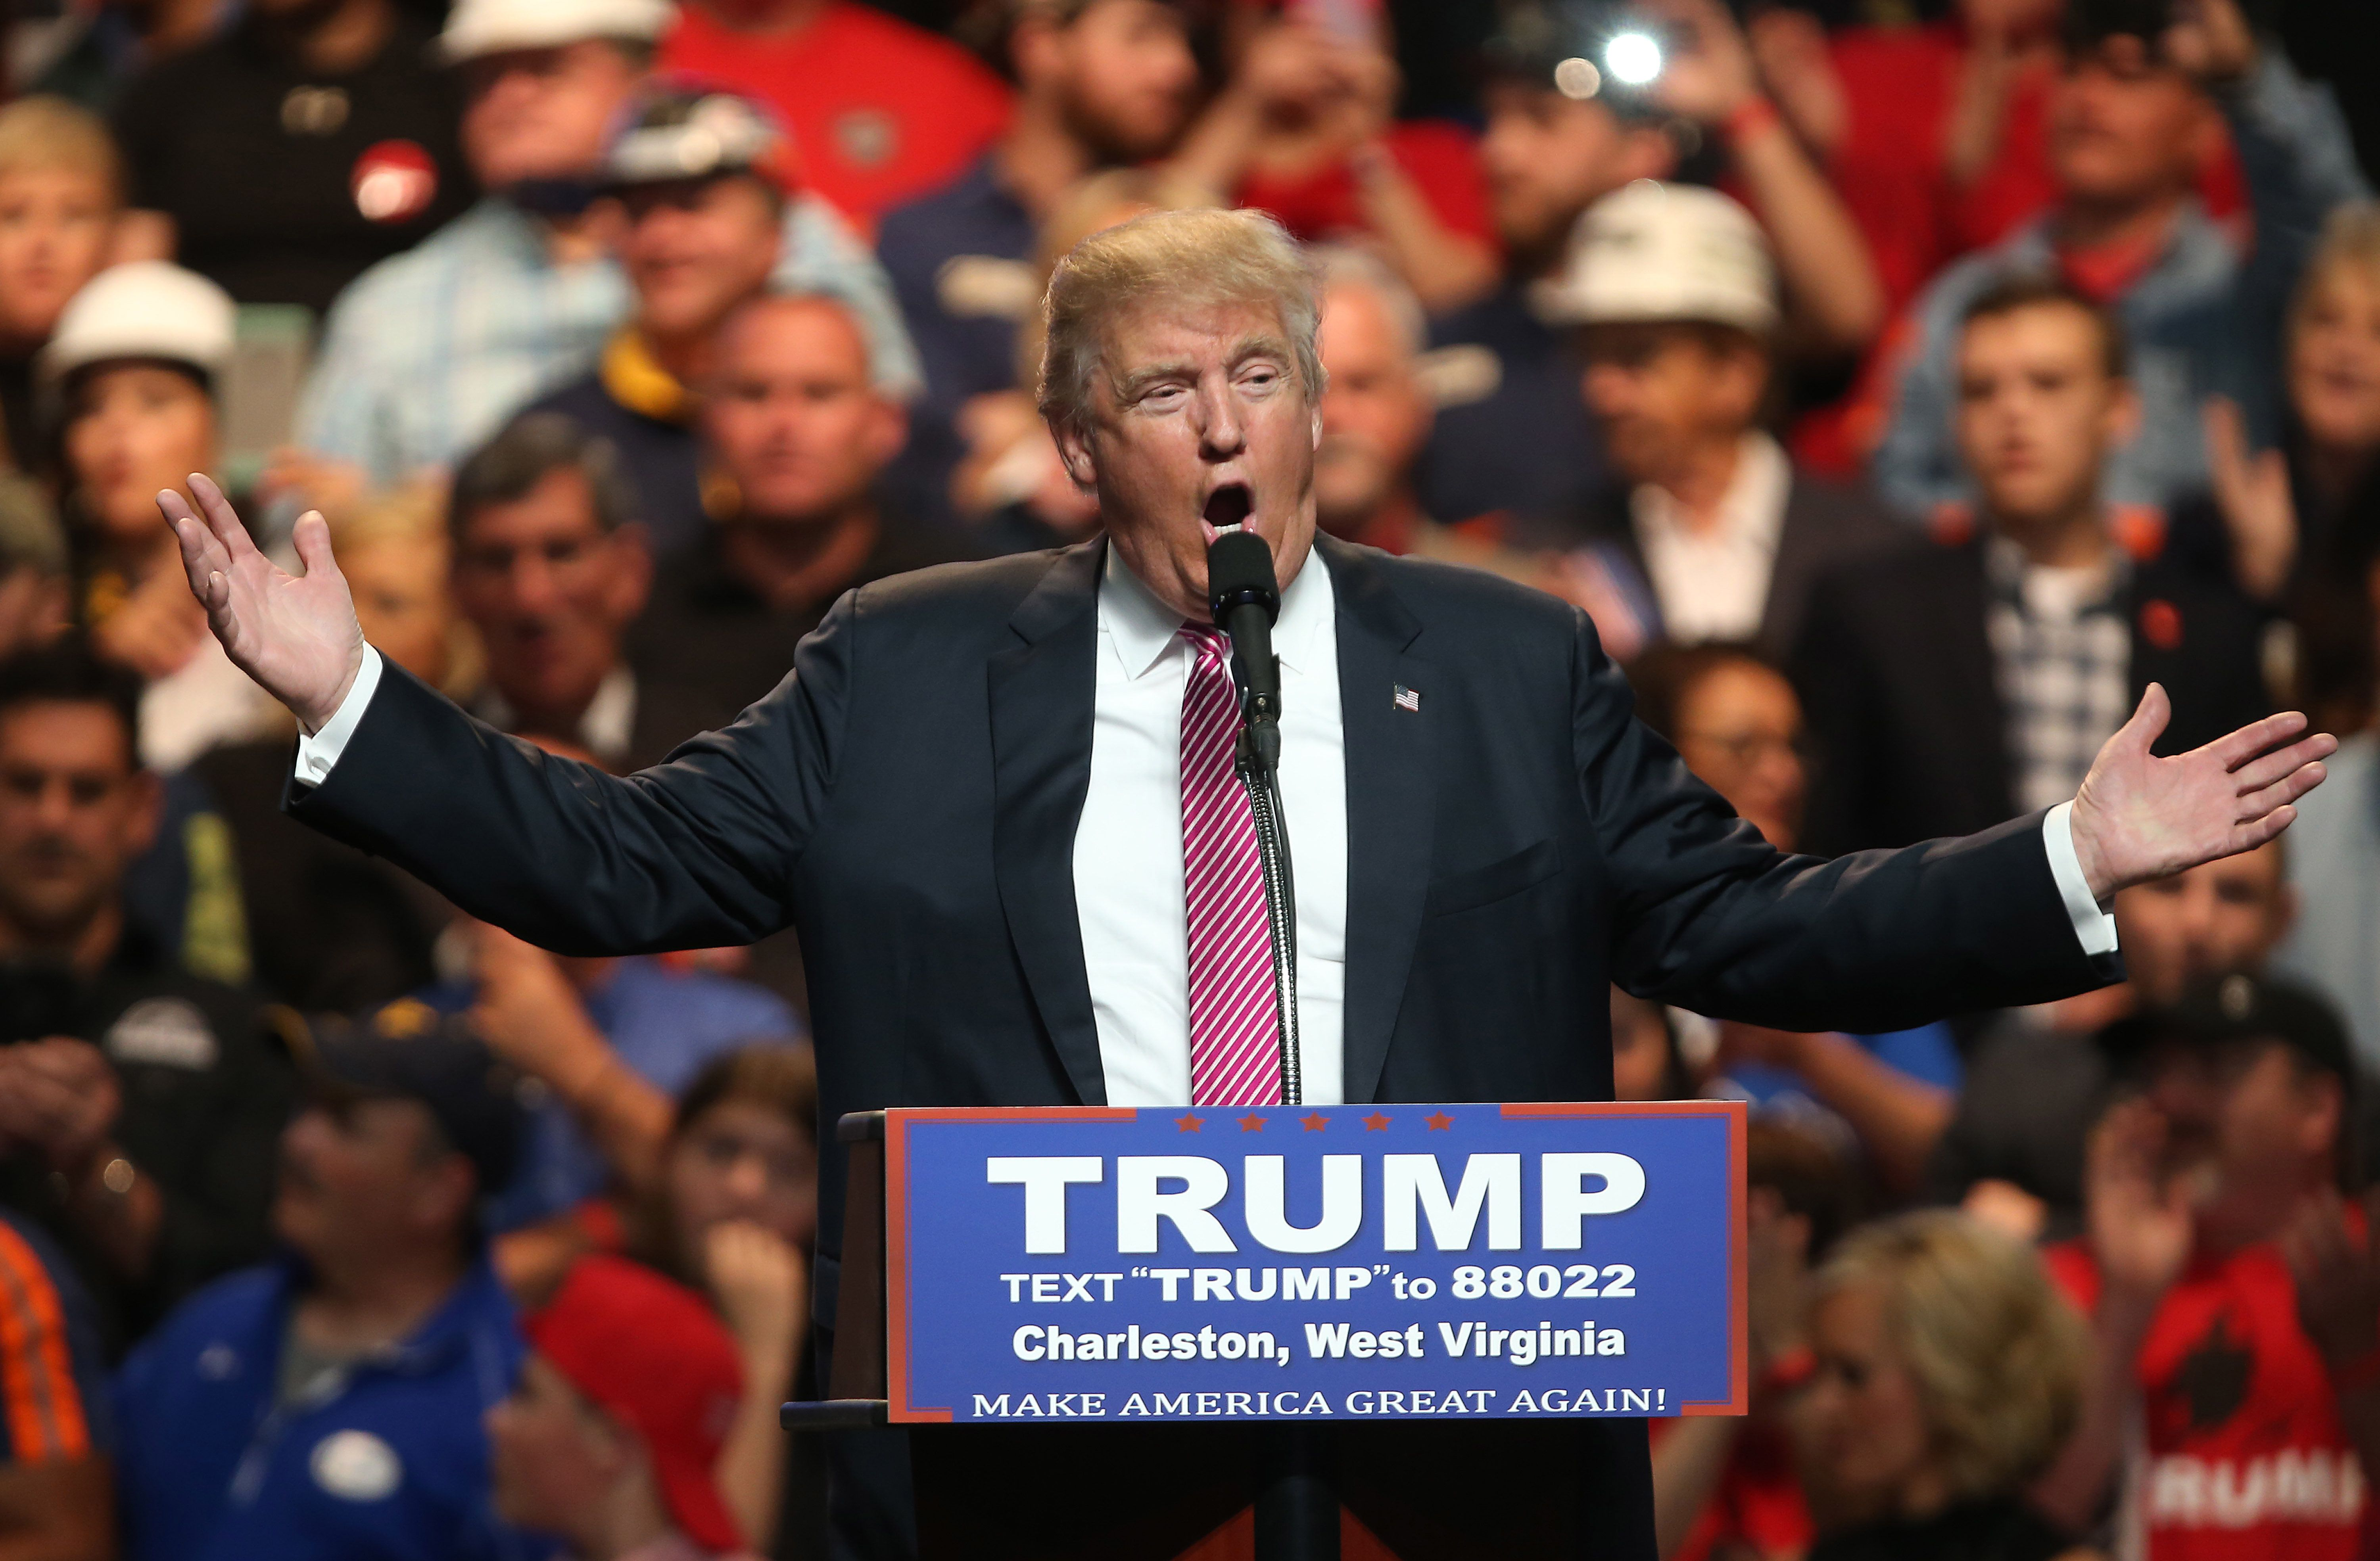 CHARLESTON, WV - MAY 05: Republican Presidential candidate Donald Trump speaks during his rally at the Charleston Civic Center on May 5, 2016 in Charleston, West Virginia. Trump became the Republican presumptive nominee following his landslide win in indiana on Tuesday.(Photo by Mark Lyons/Getty Images)